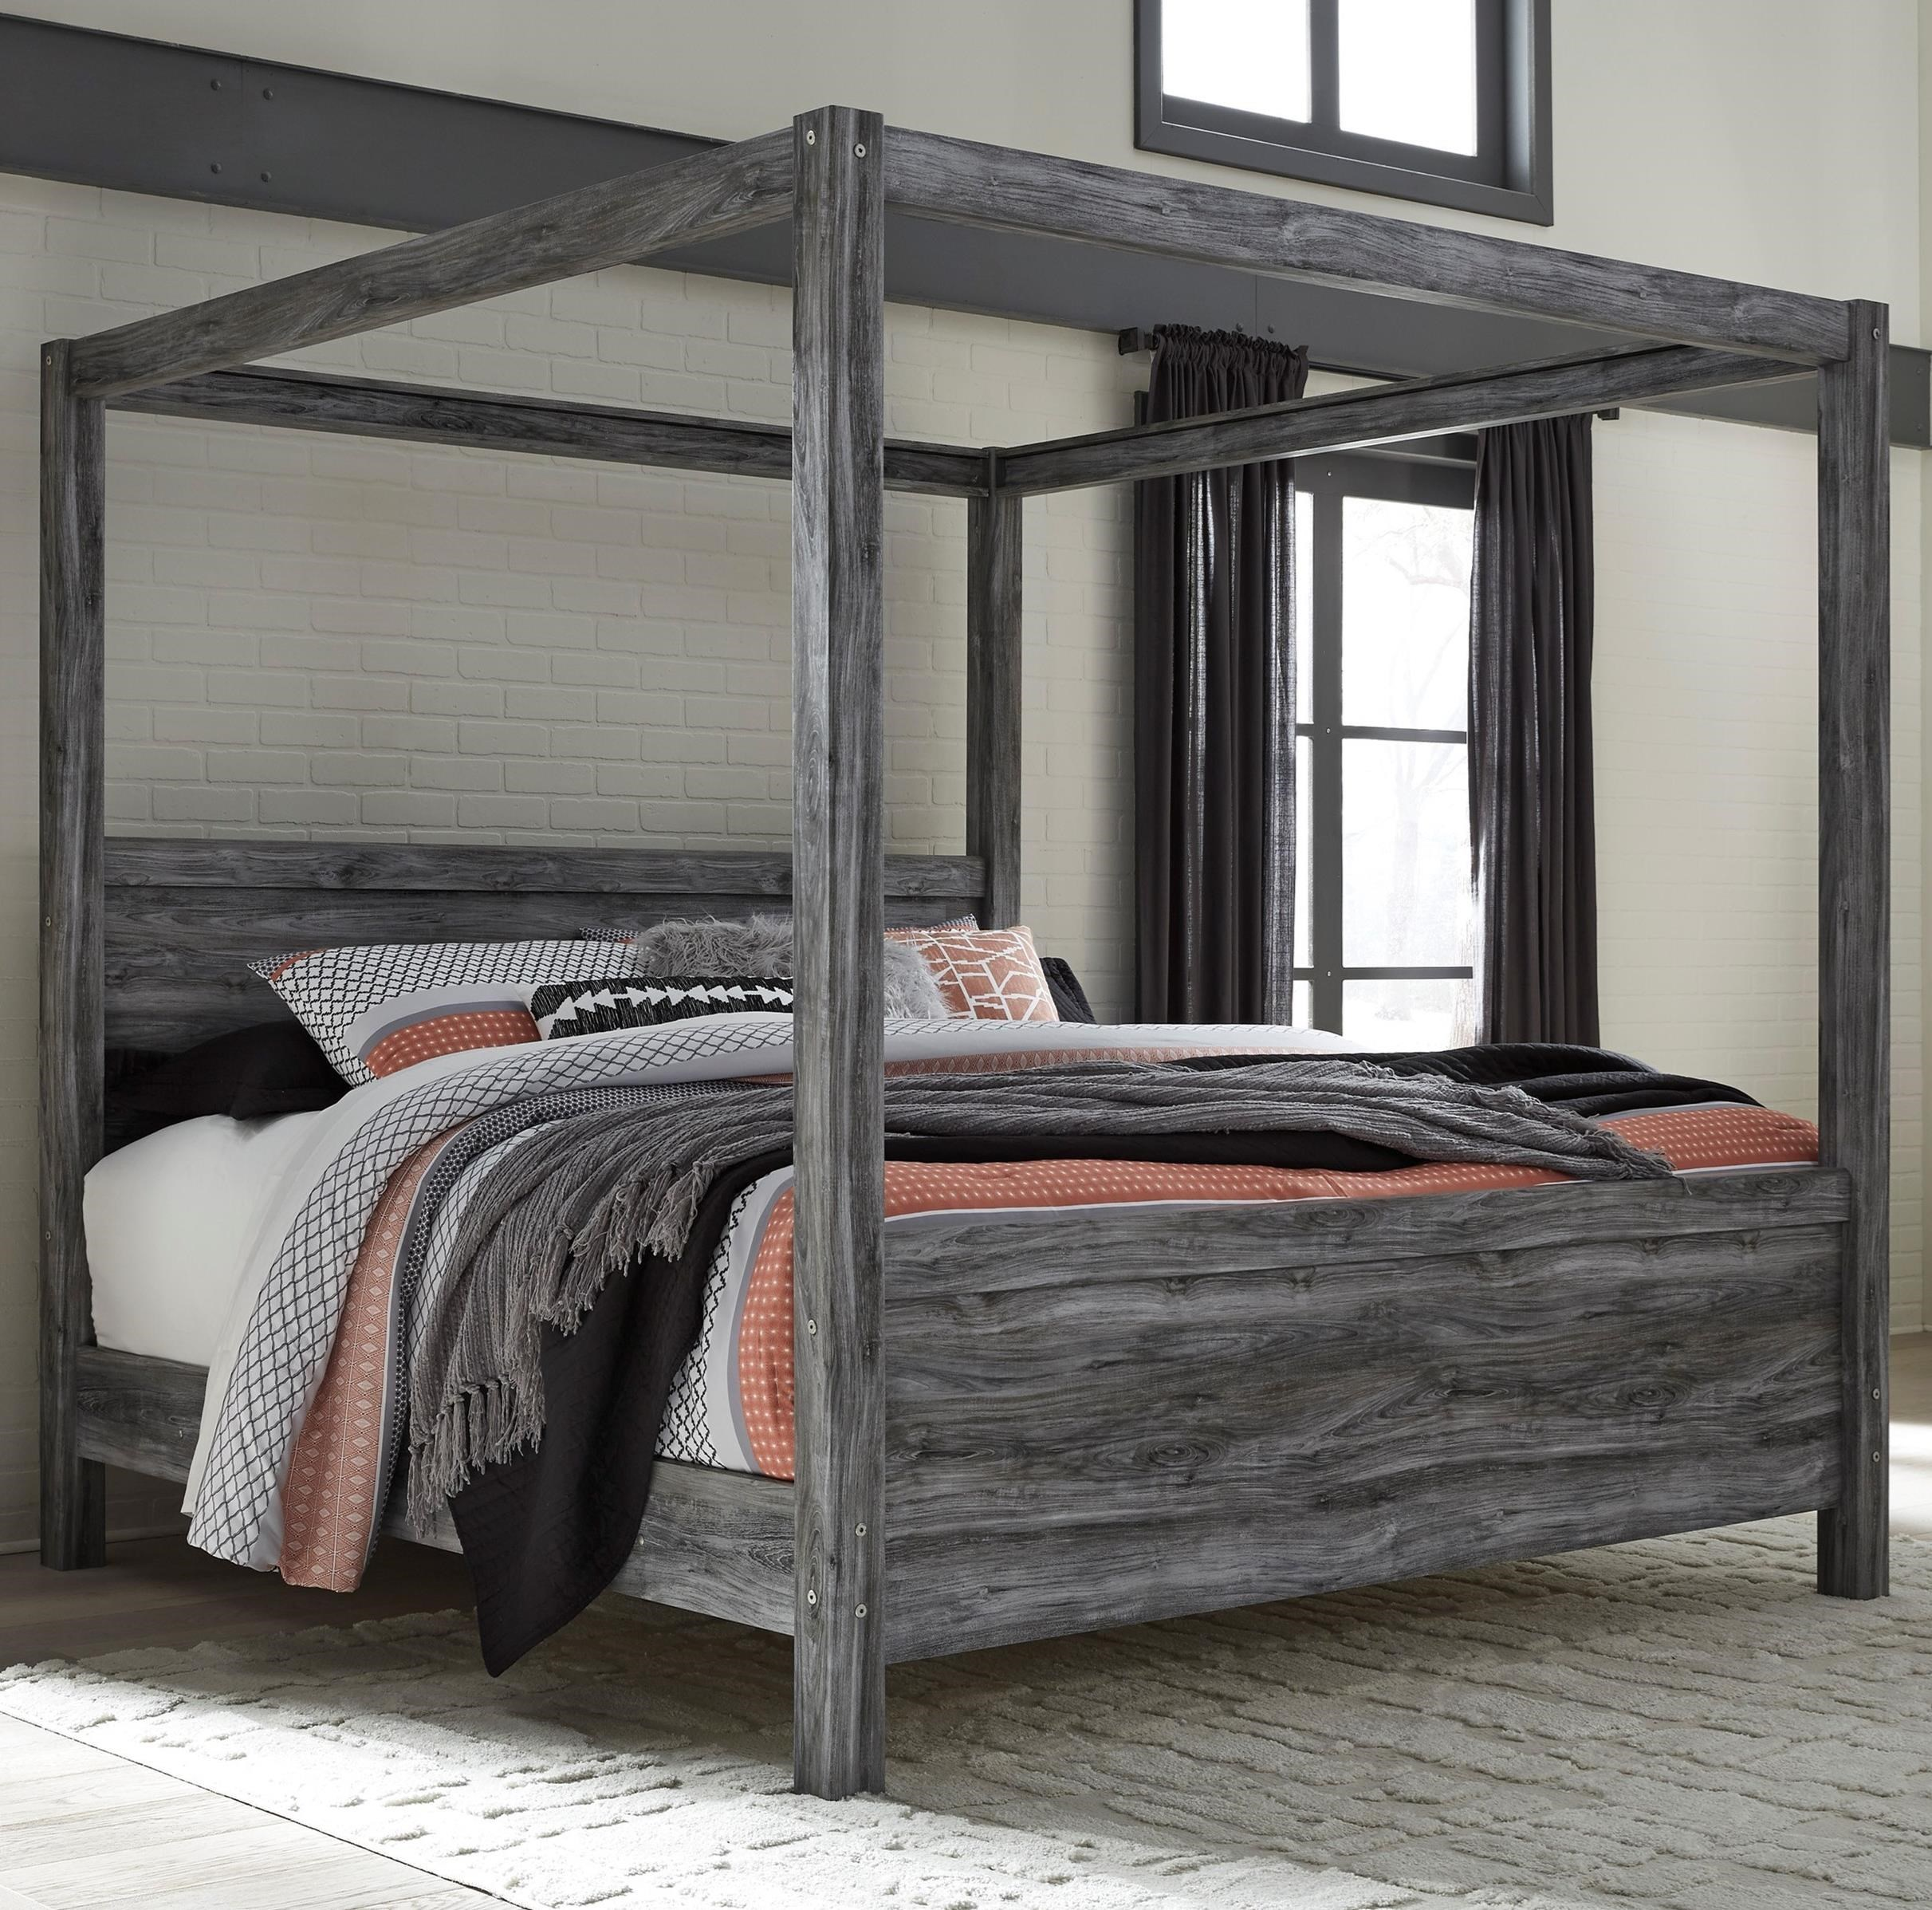 Signature Design by Ashley Baystorm King Canopy Bed in Gray Finish | Royal Furniture | Canopy Beds  sc 1 st  Royal Furniture & Signature Design by Ashley Baystorm King Canopy Bed in Gray Finish ...